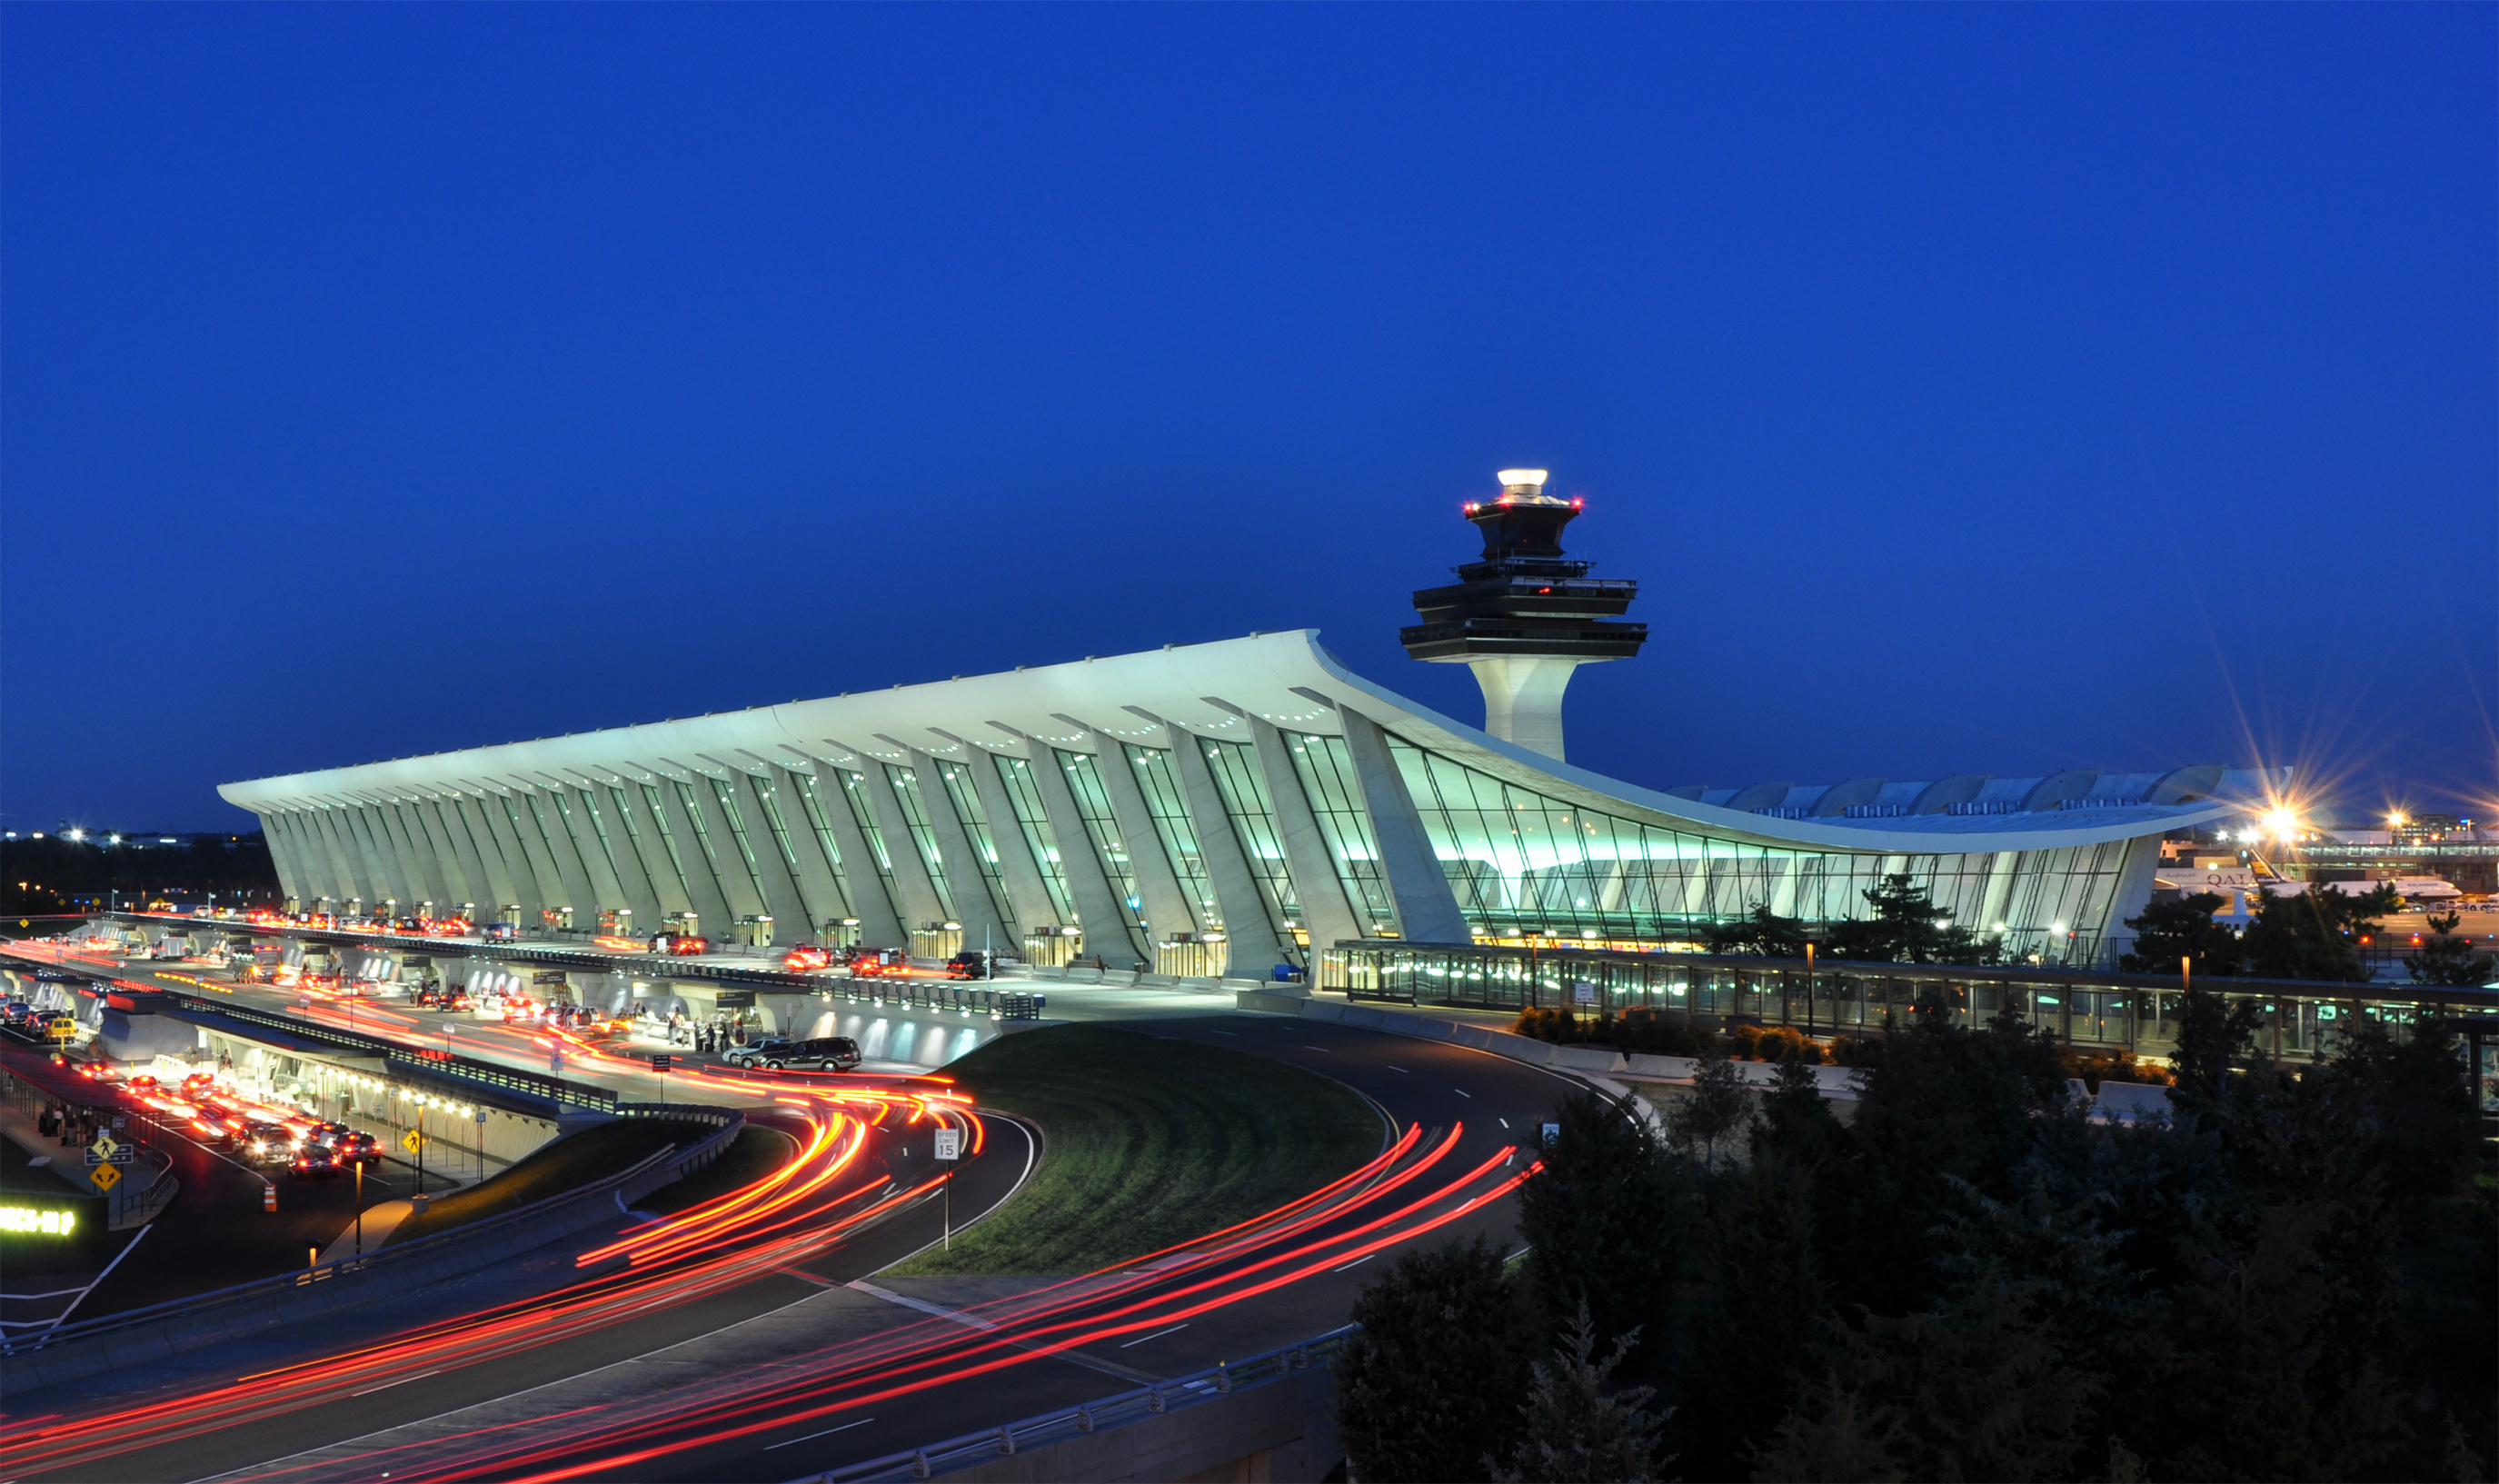 Dulles International Airport near Washington D.C. Photo: Wikimedia.